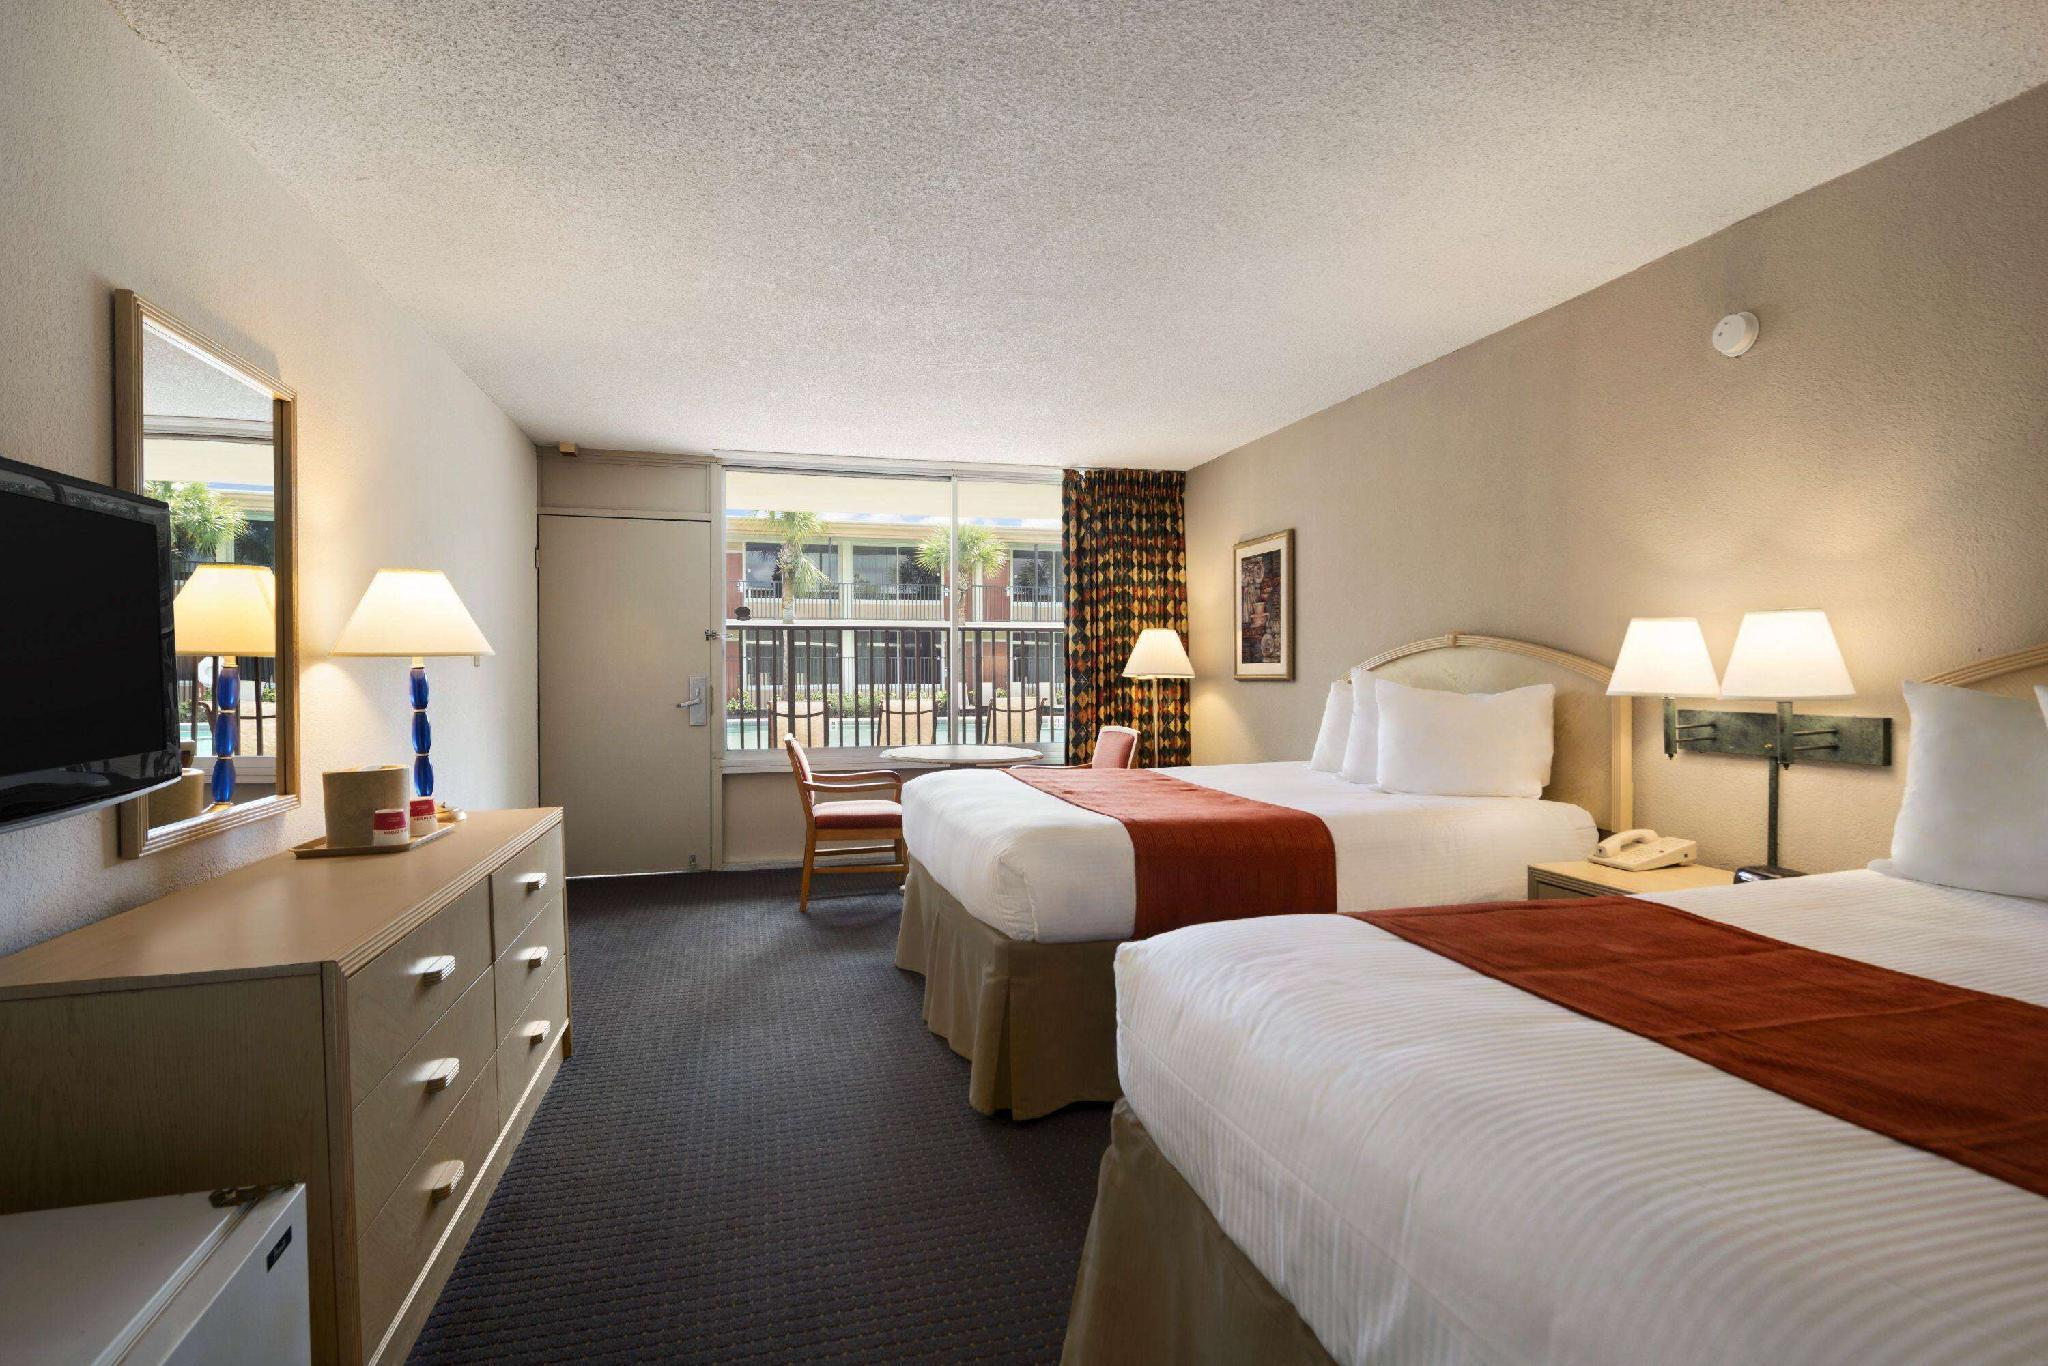 2 Queen Beds, Mobility/Hearing Impaired Accessible Tower Room, Non-Smoking